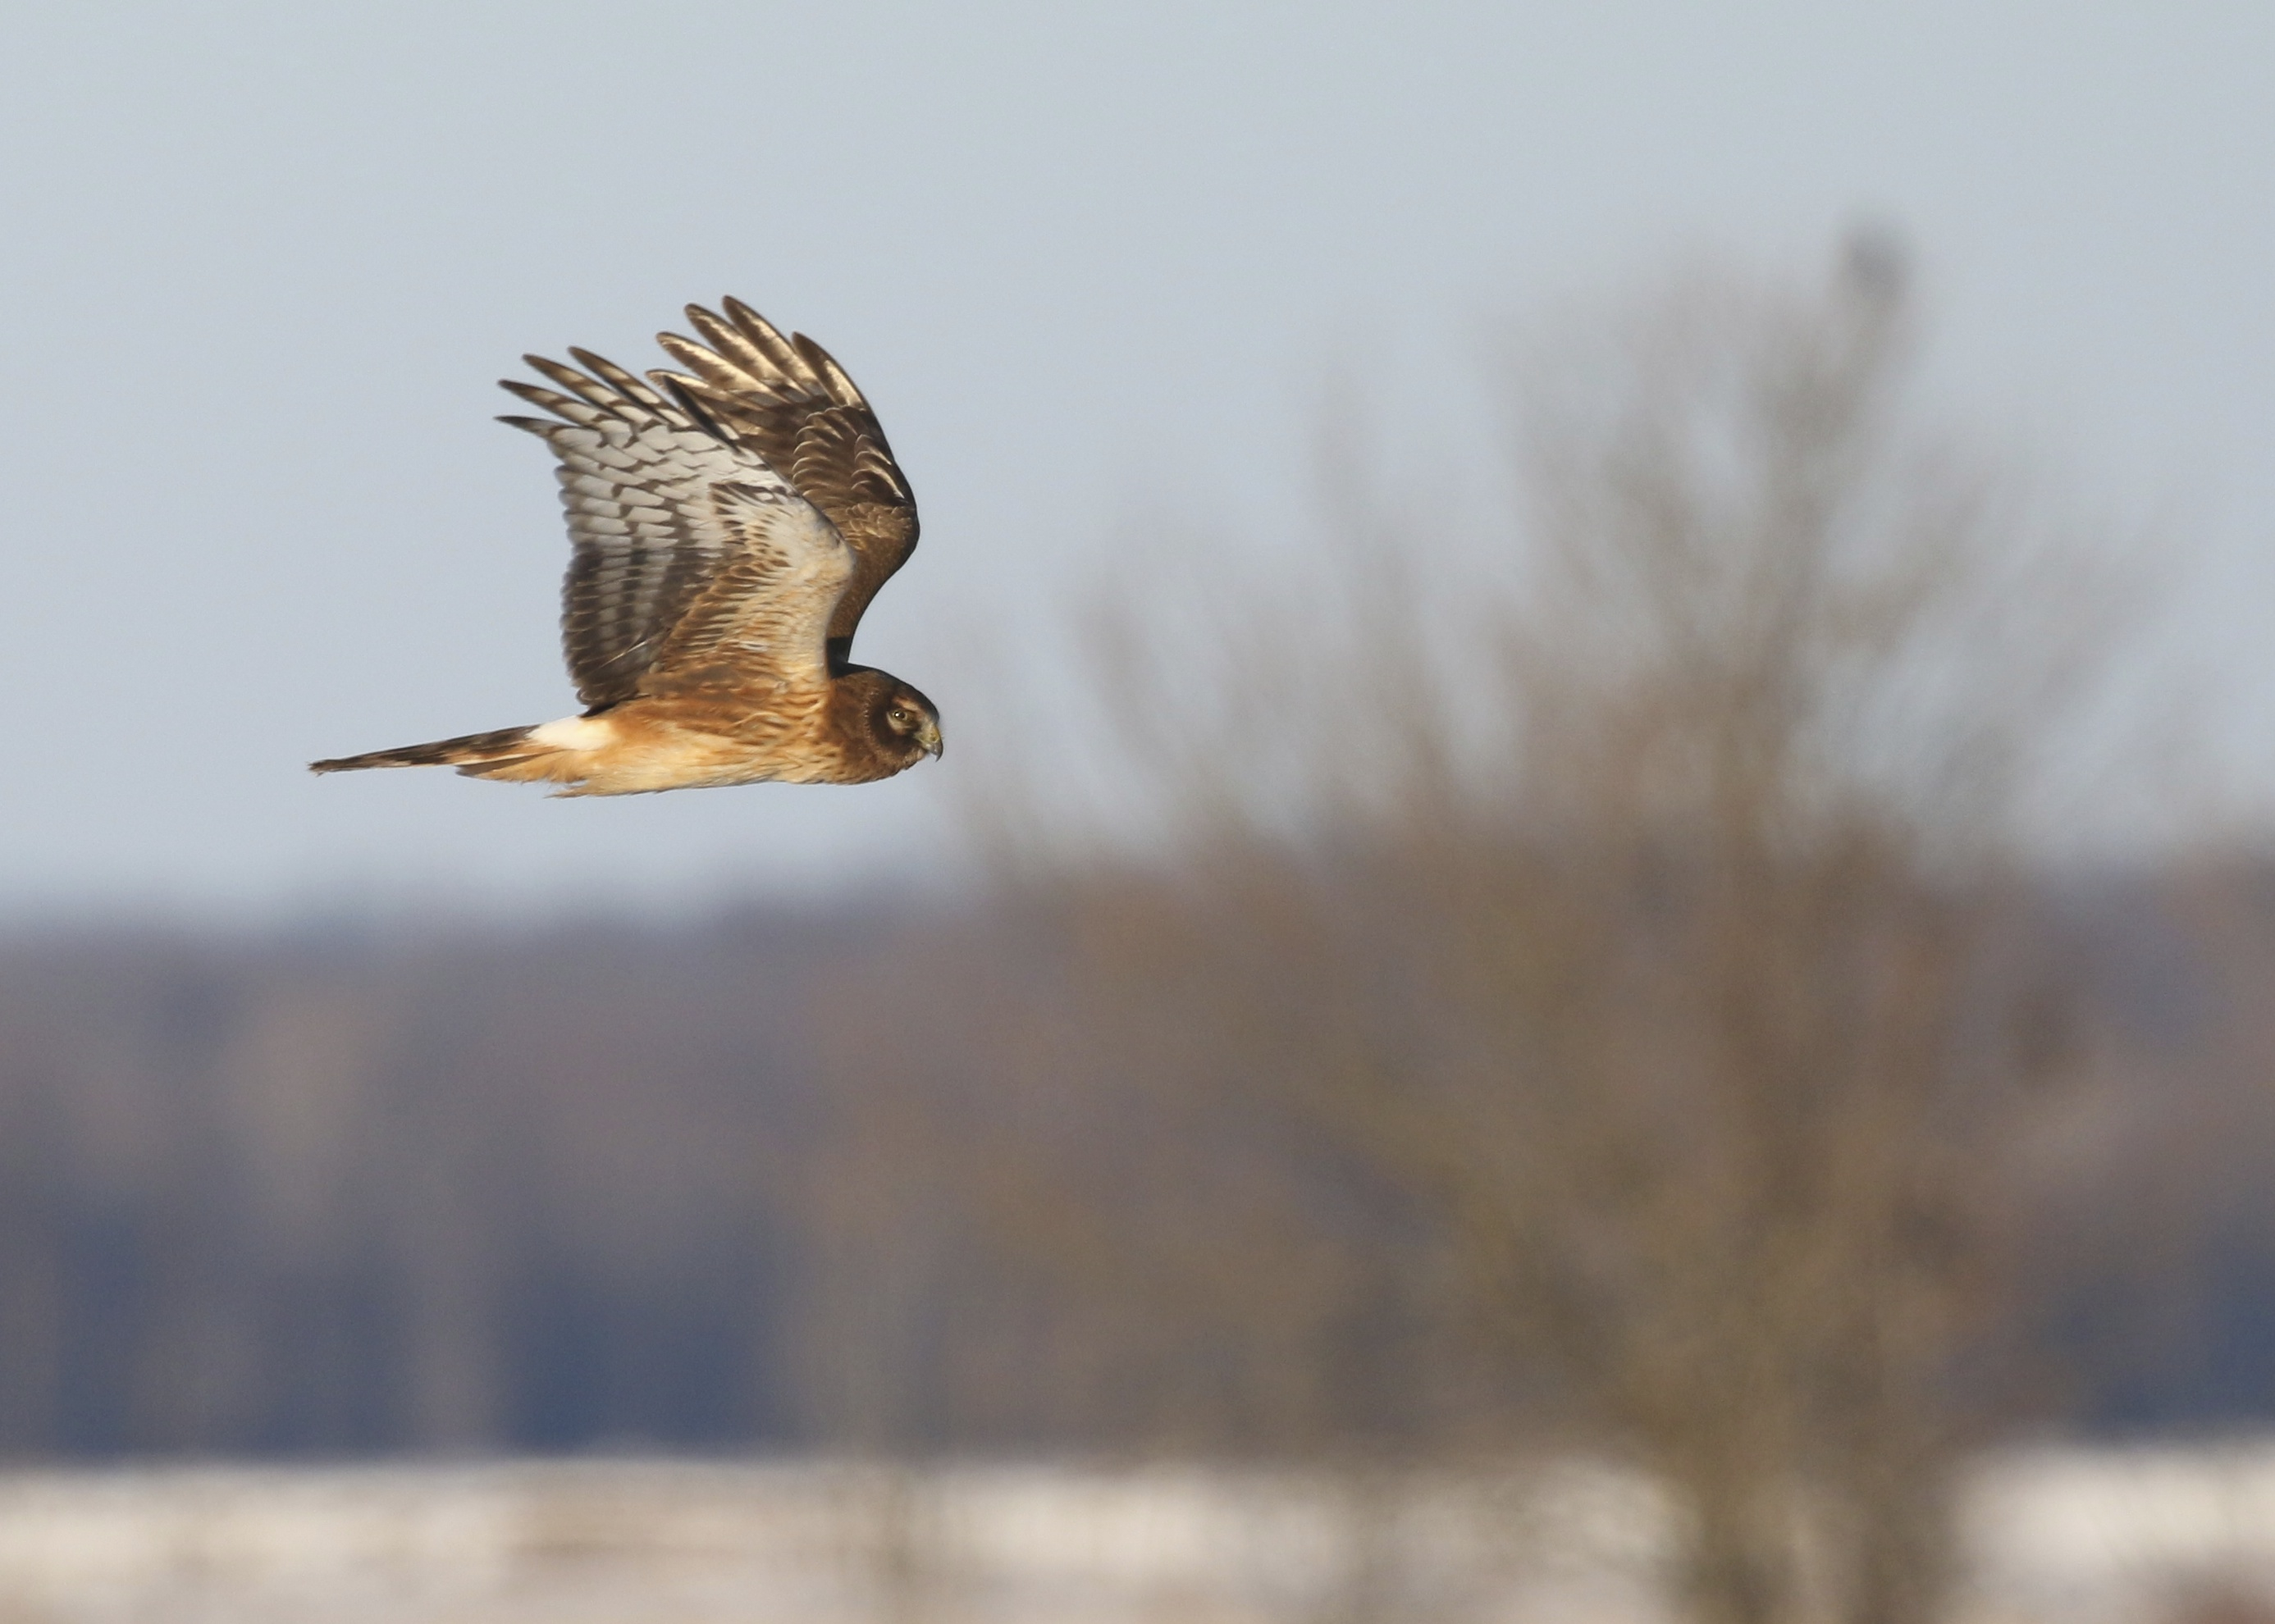 It's been ages since I've gotten a good Northern Harrier shot - I think I was spoiled last winter when they seemed to always be around. Wallkill River NWR, 2/28/14.